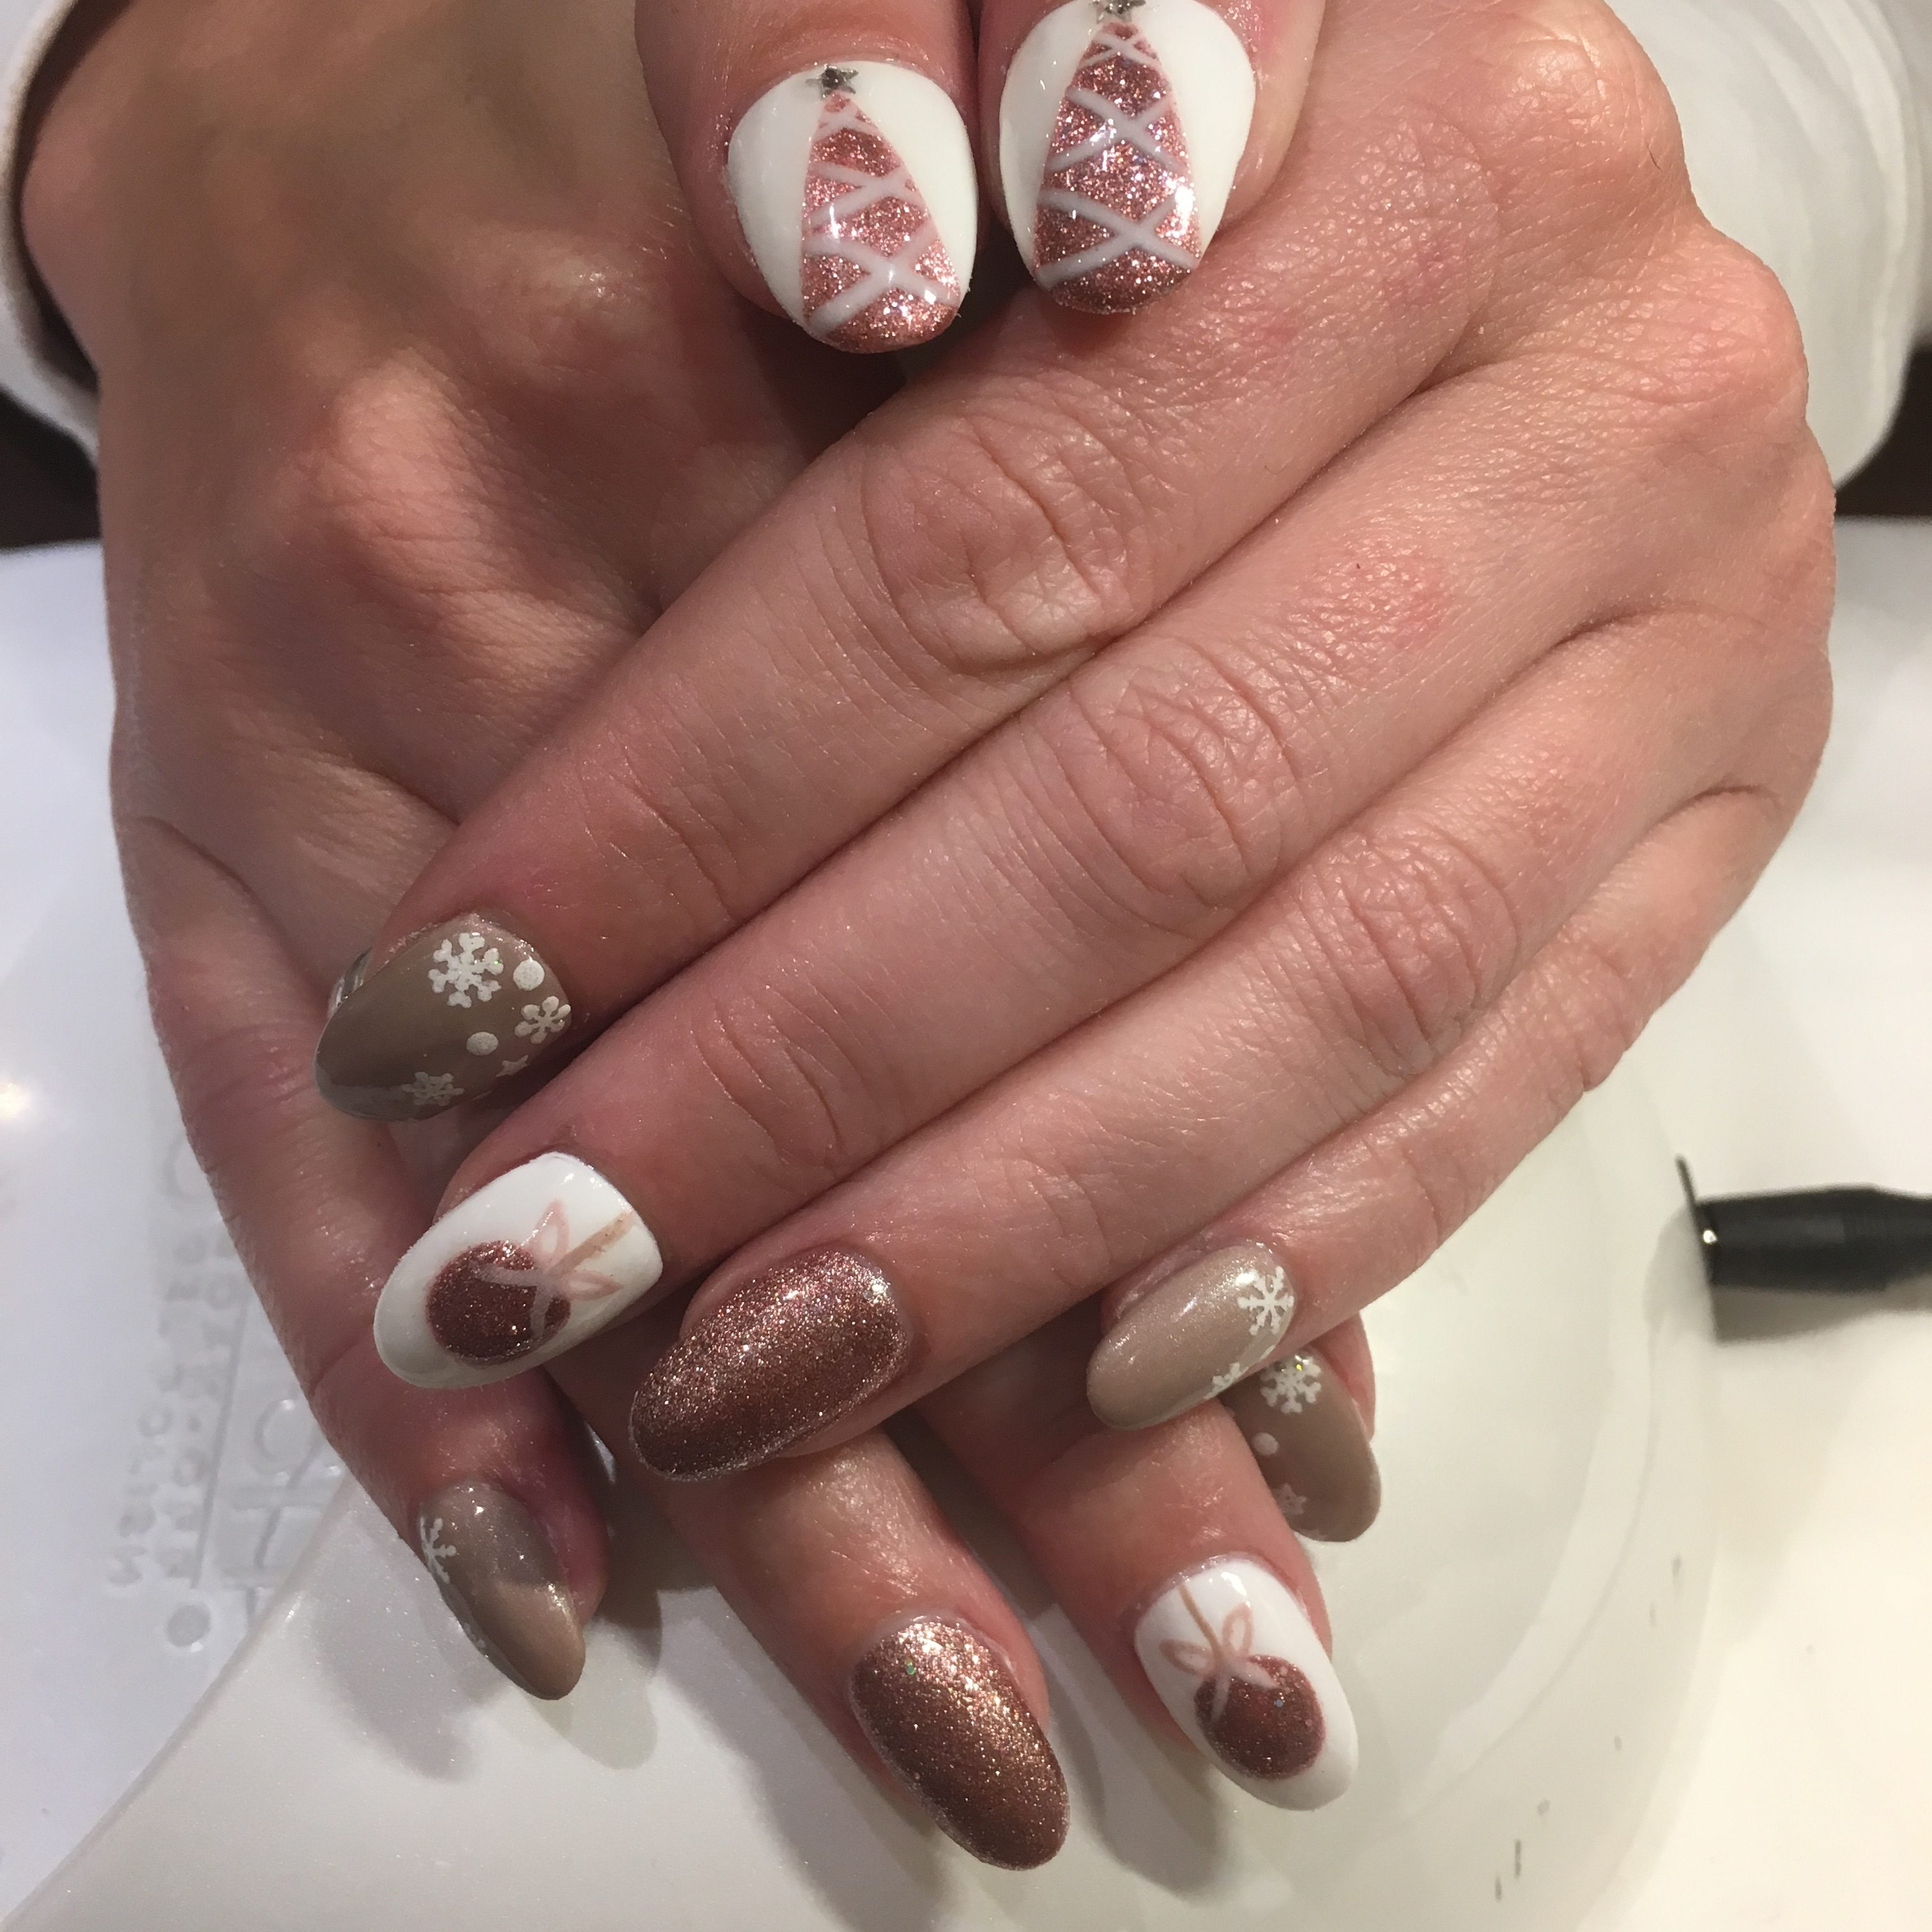 Nail art wolf road image collections nail art and nail design ideas nail art wolf road albany hours nail art ideas nail art introduction images designs prinsesfo image prinsesfo Gallery